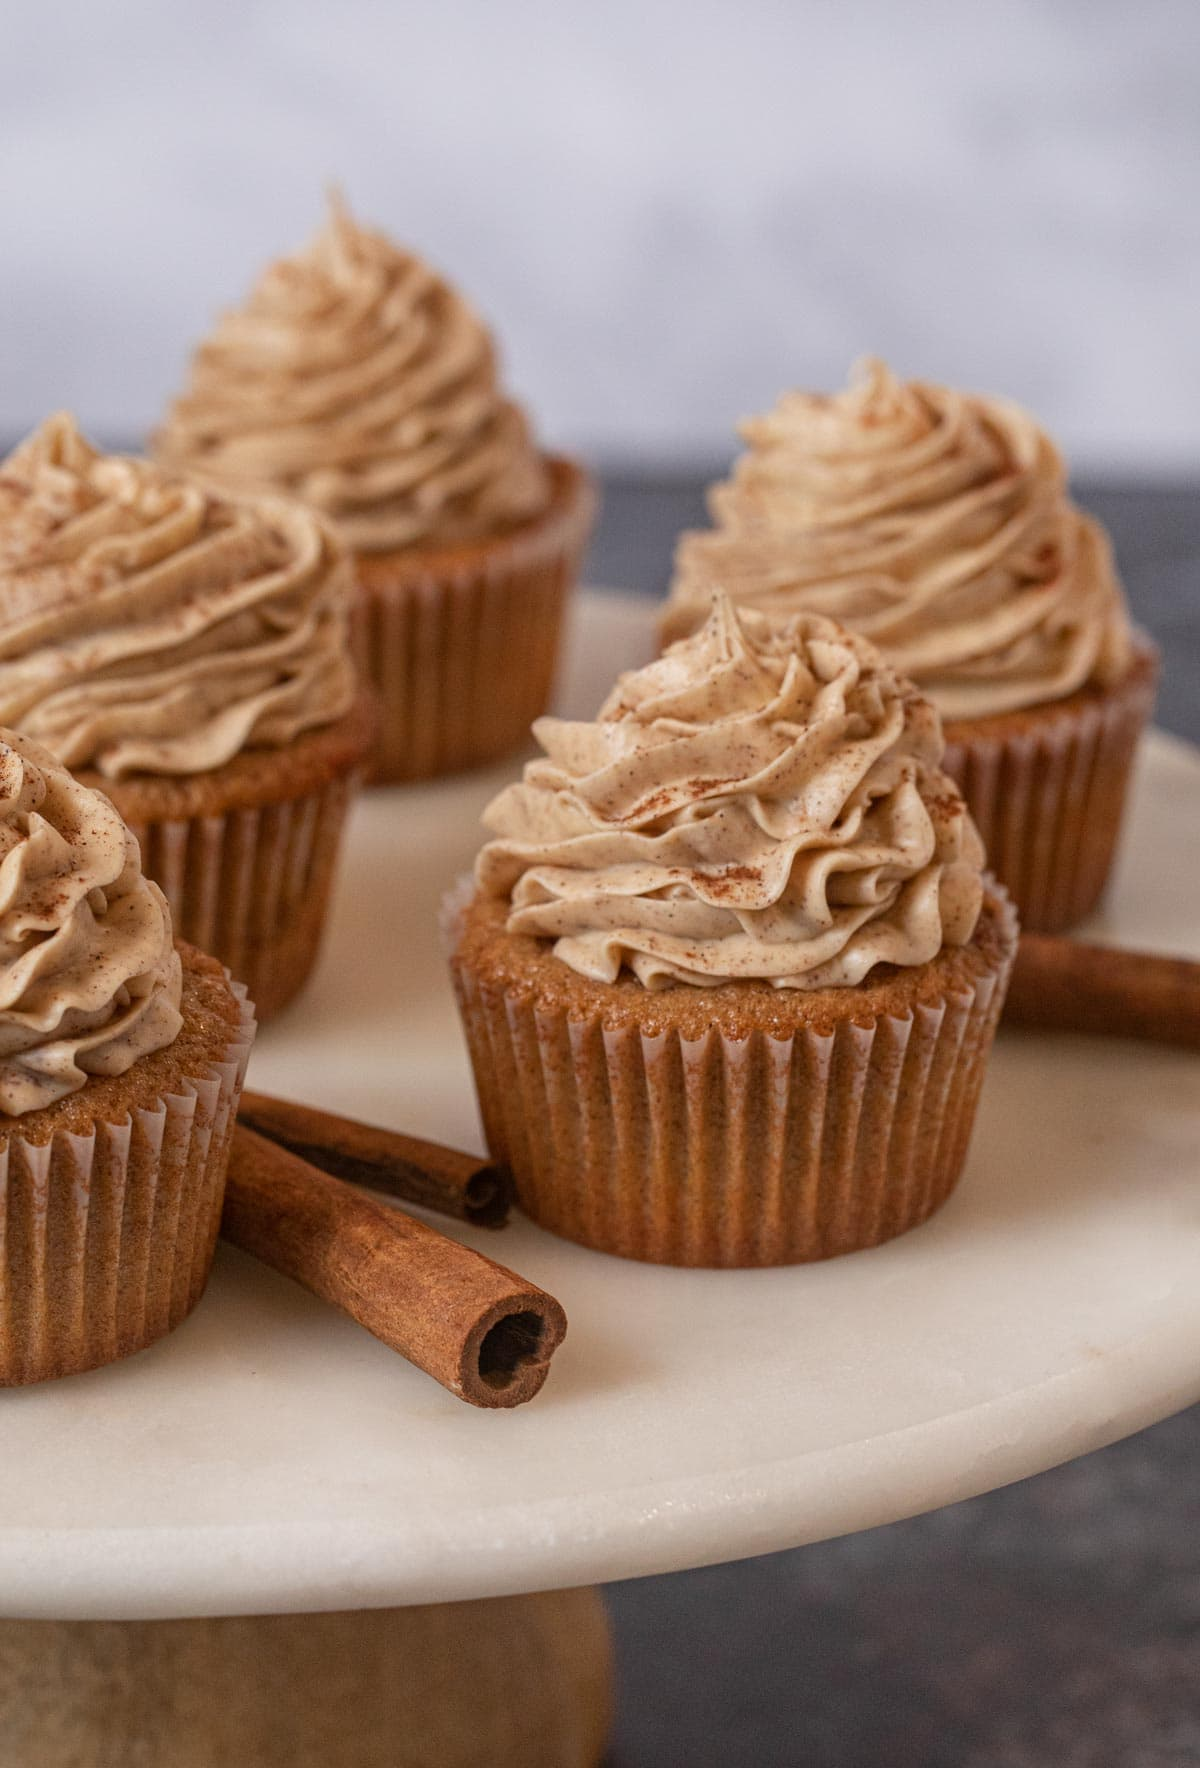 Snickerdoodle Cupcakes on cake stand